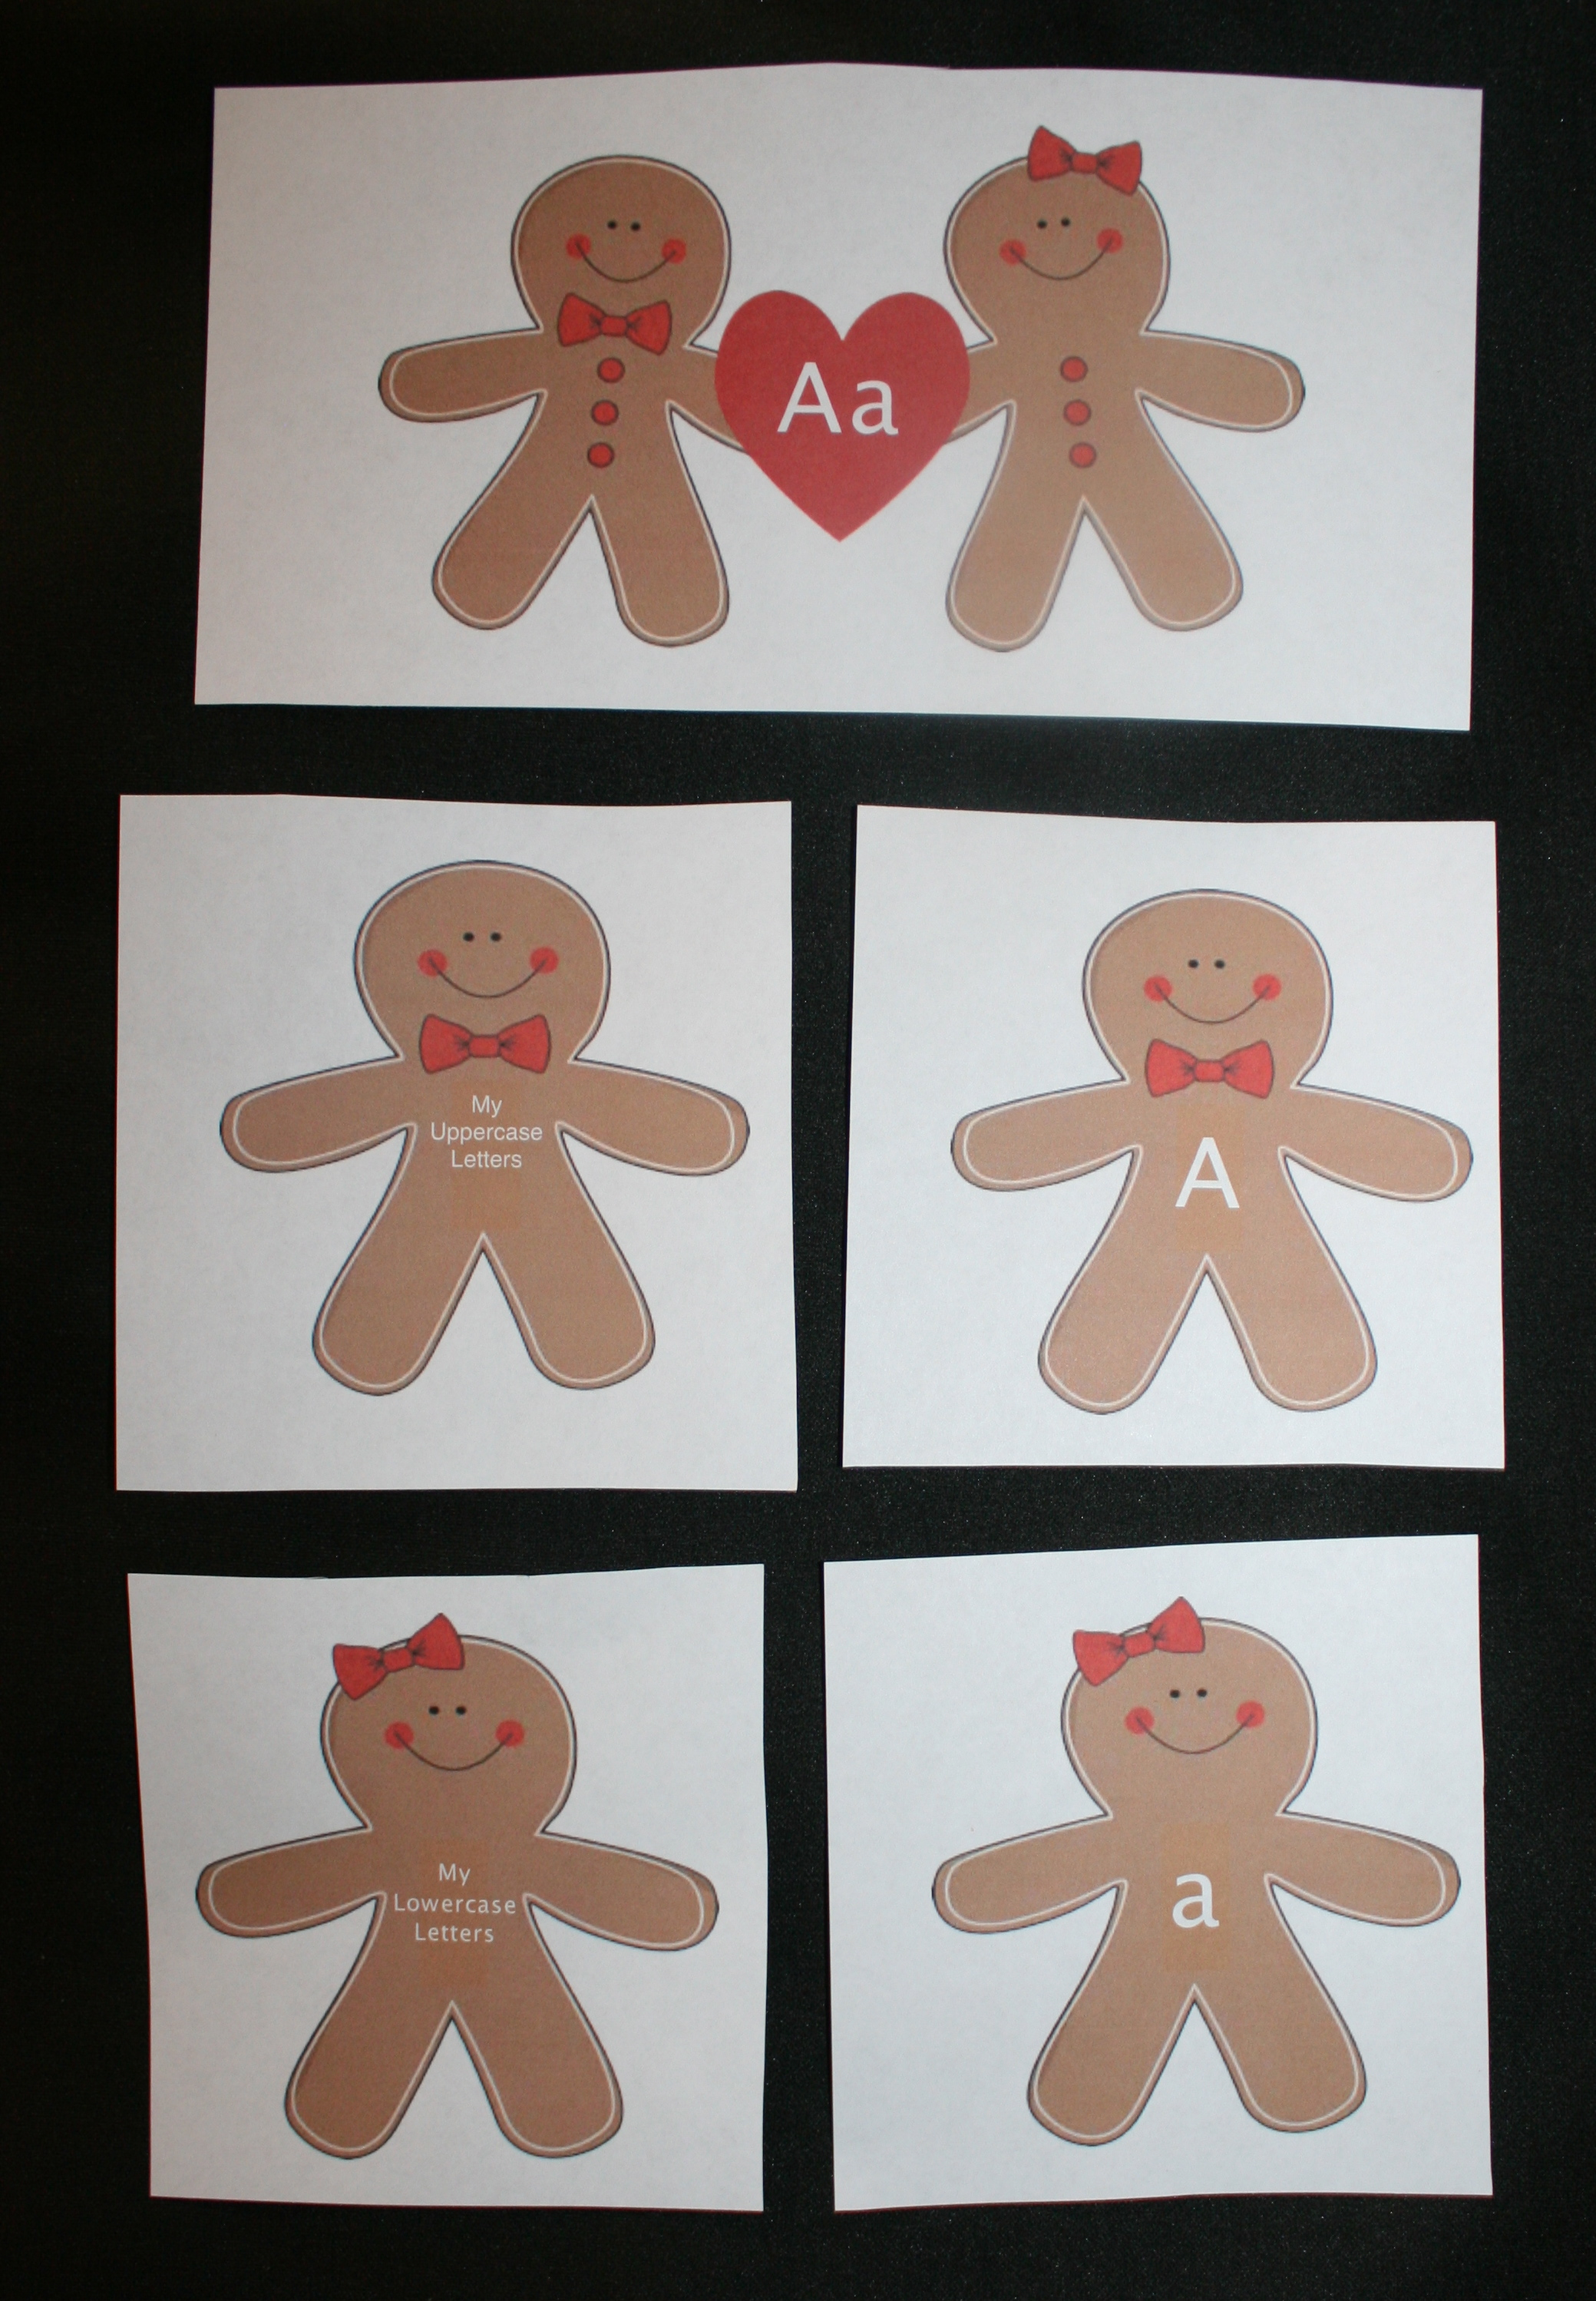 FREE common core lessons, gingerbread alphabet cards, gingerbread Venn diagrams, gingerbread activities, gingerbread bookmarks, gingerbread lessons, gingerbread booklets, gingerbread sentences, gingerbread arts and crafts, gingerbread bulletin boards,